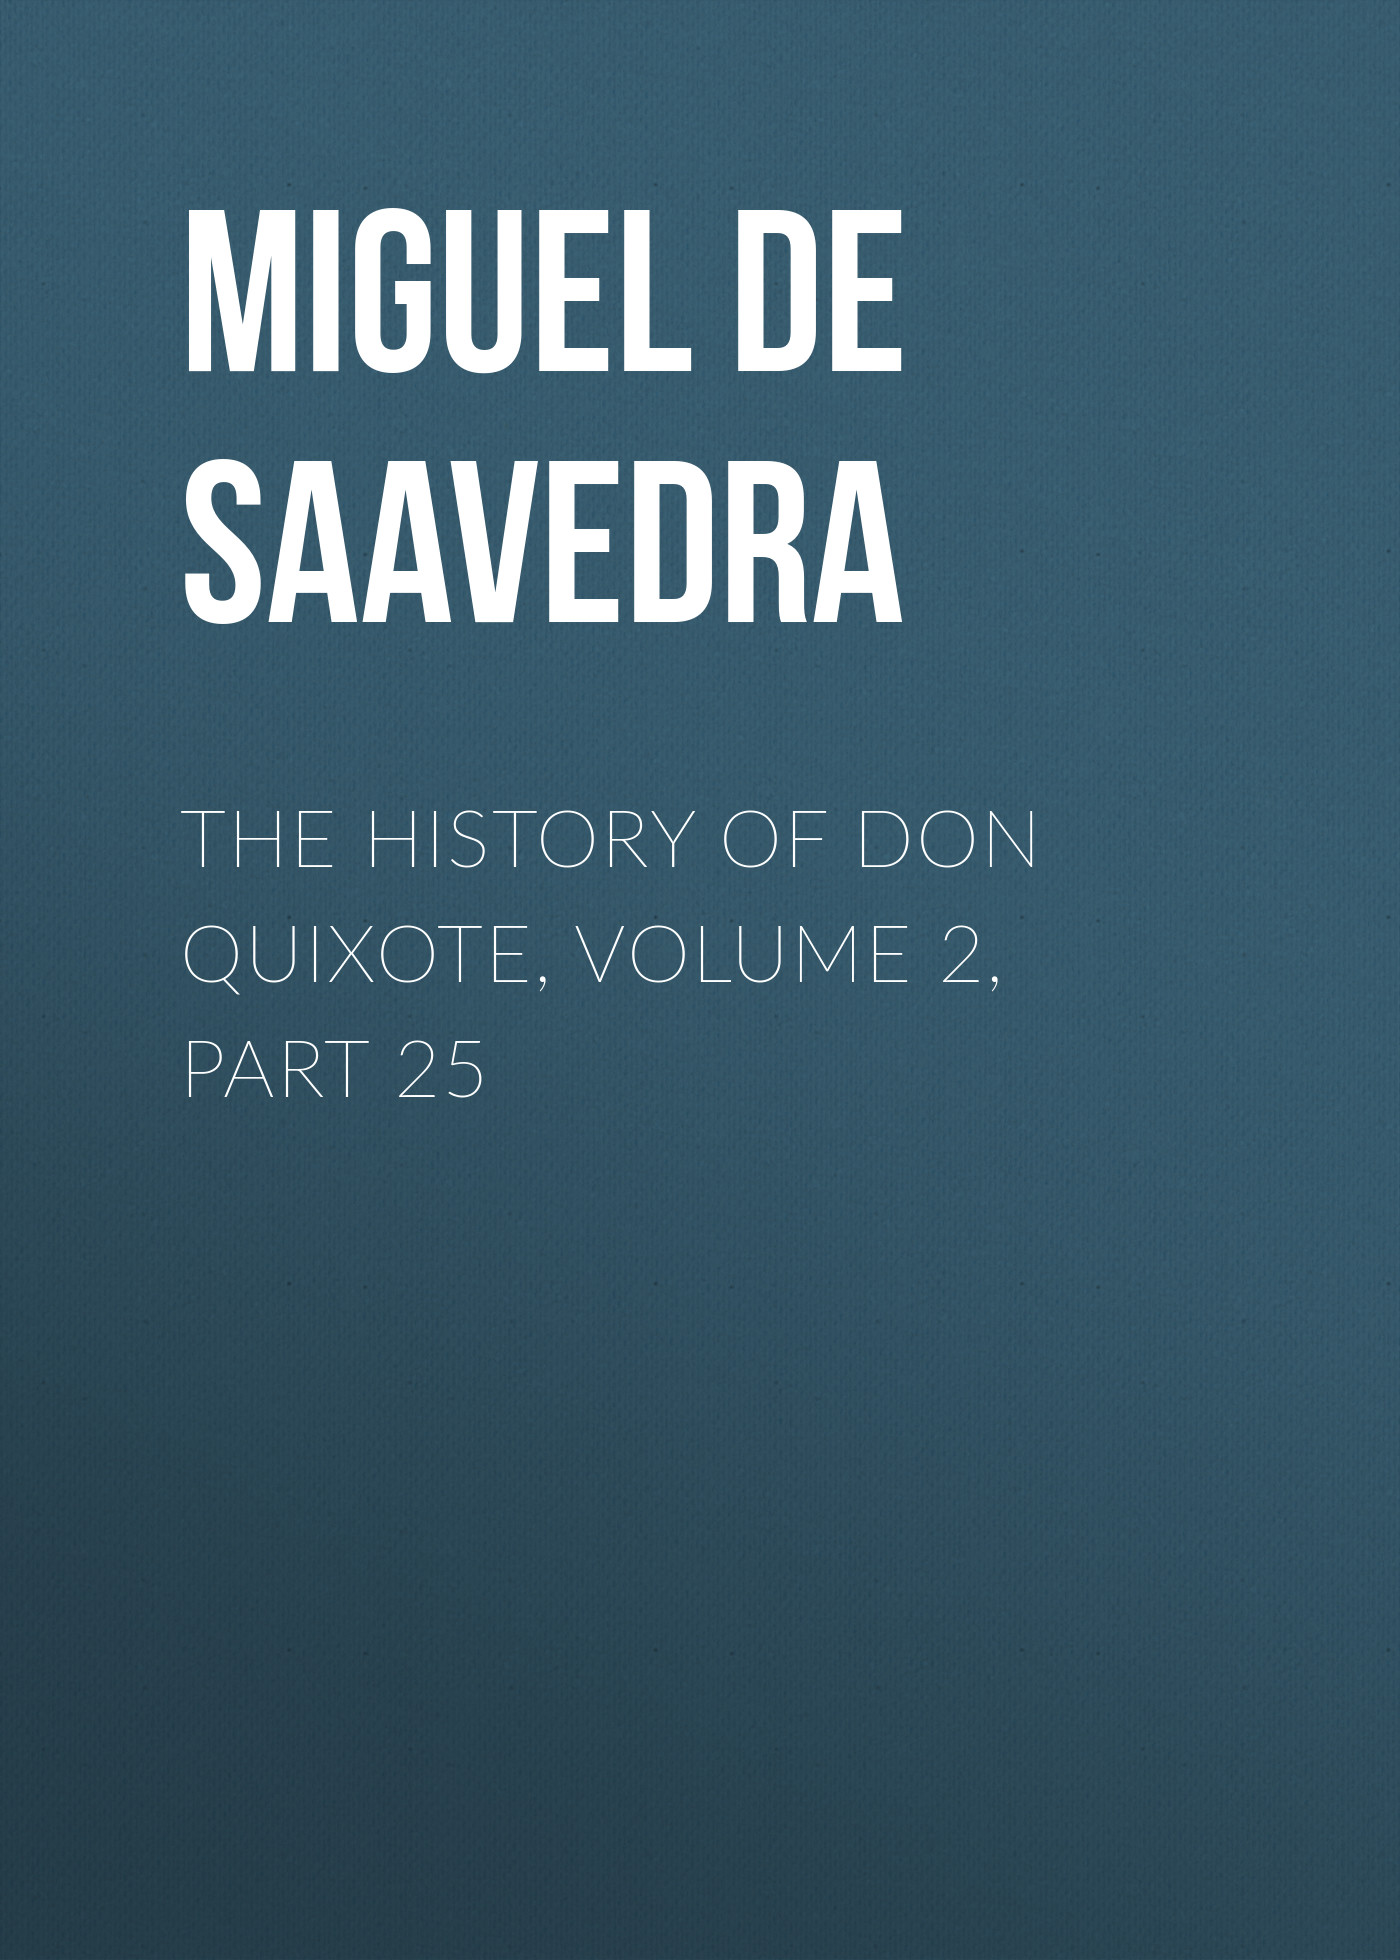 the history of don quixote volume 2 part 25